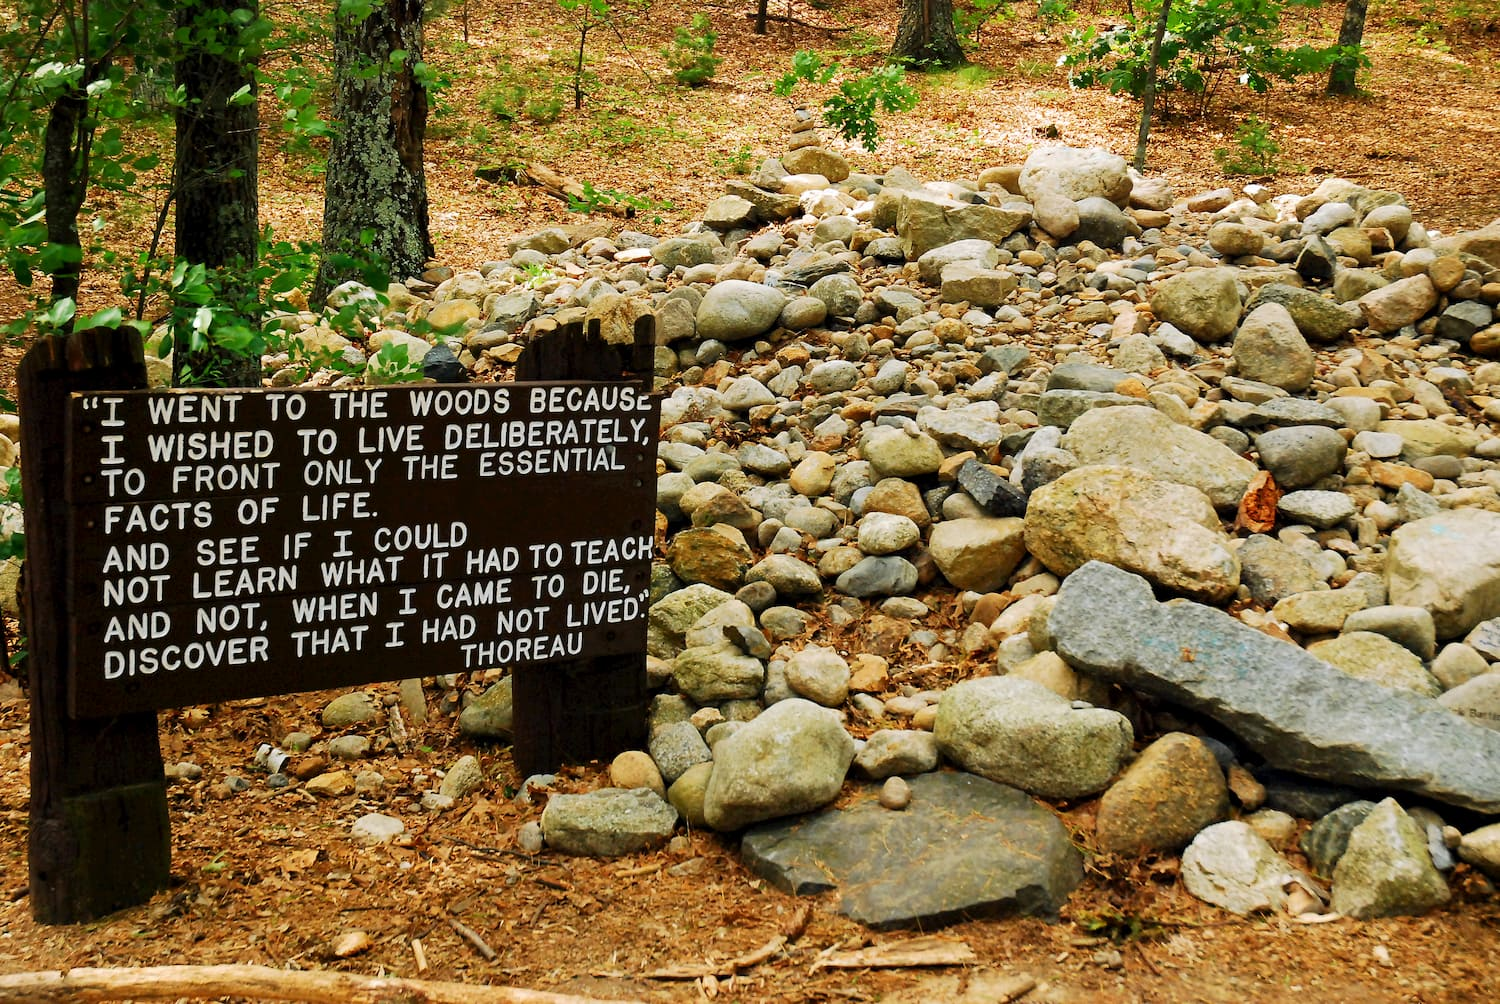 Sign with Thoreau nature quote